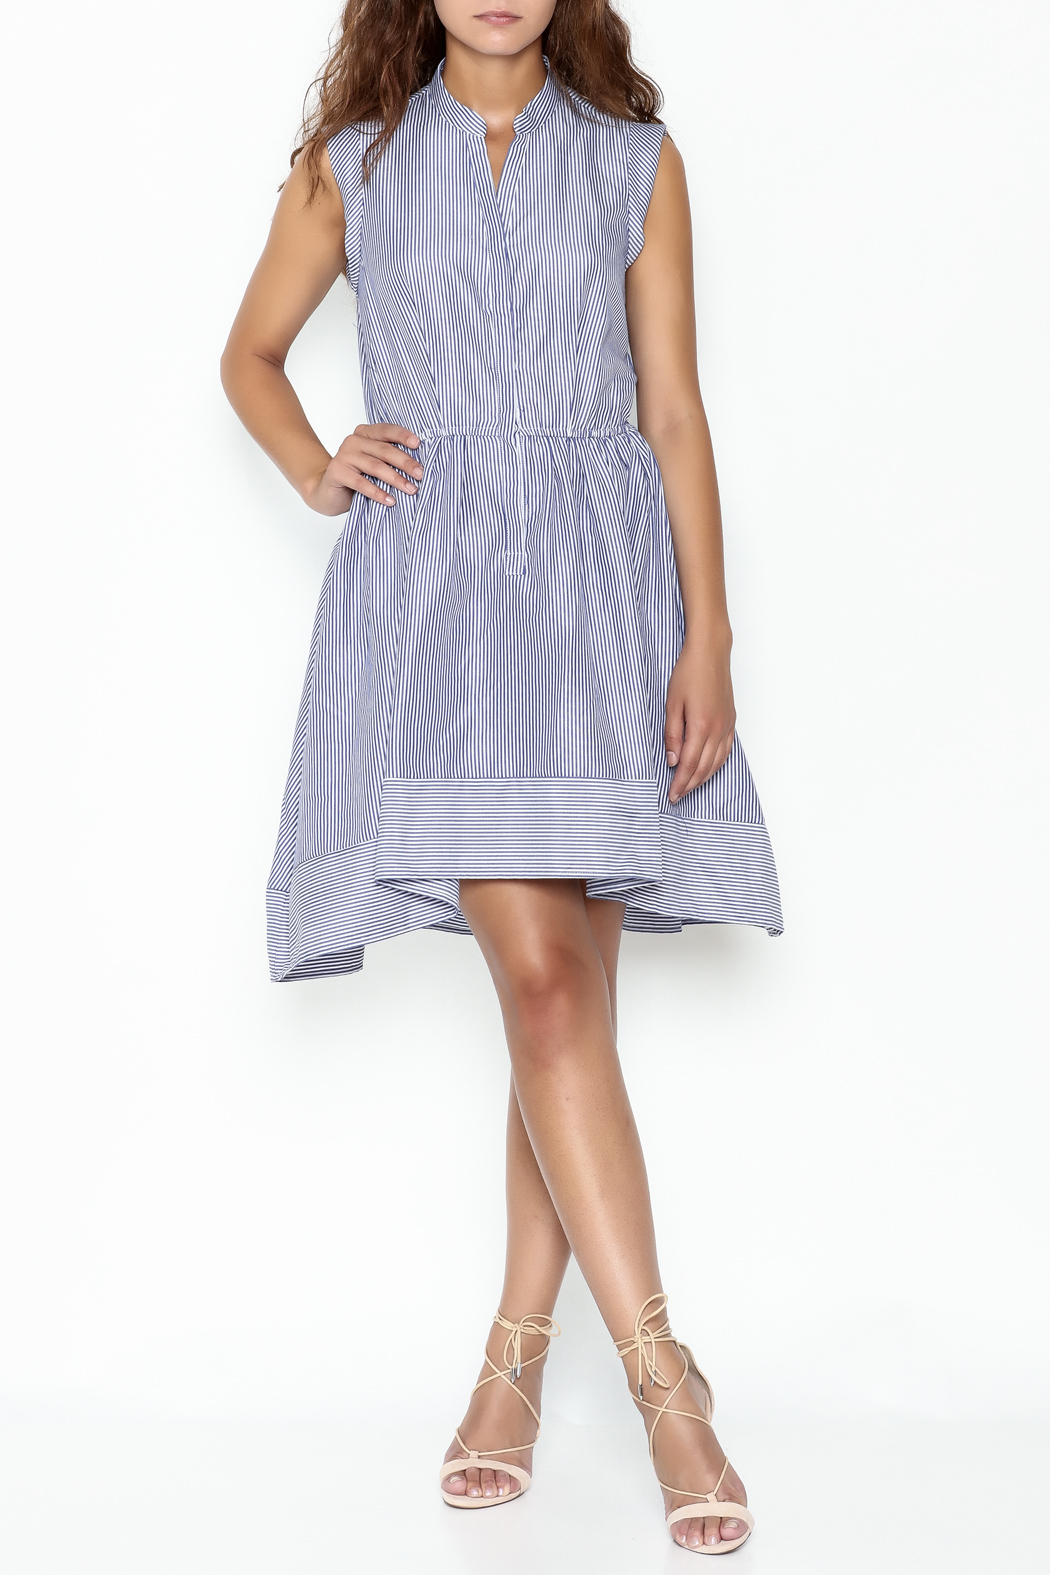 Lucy Paris Striped Fit & Flare Dress - Side Cropped Image